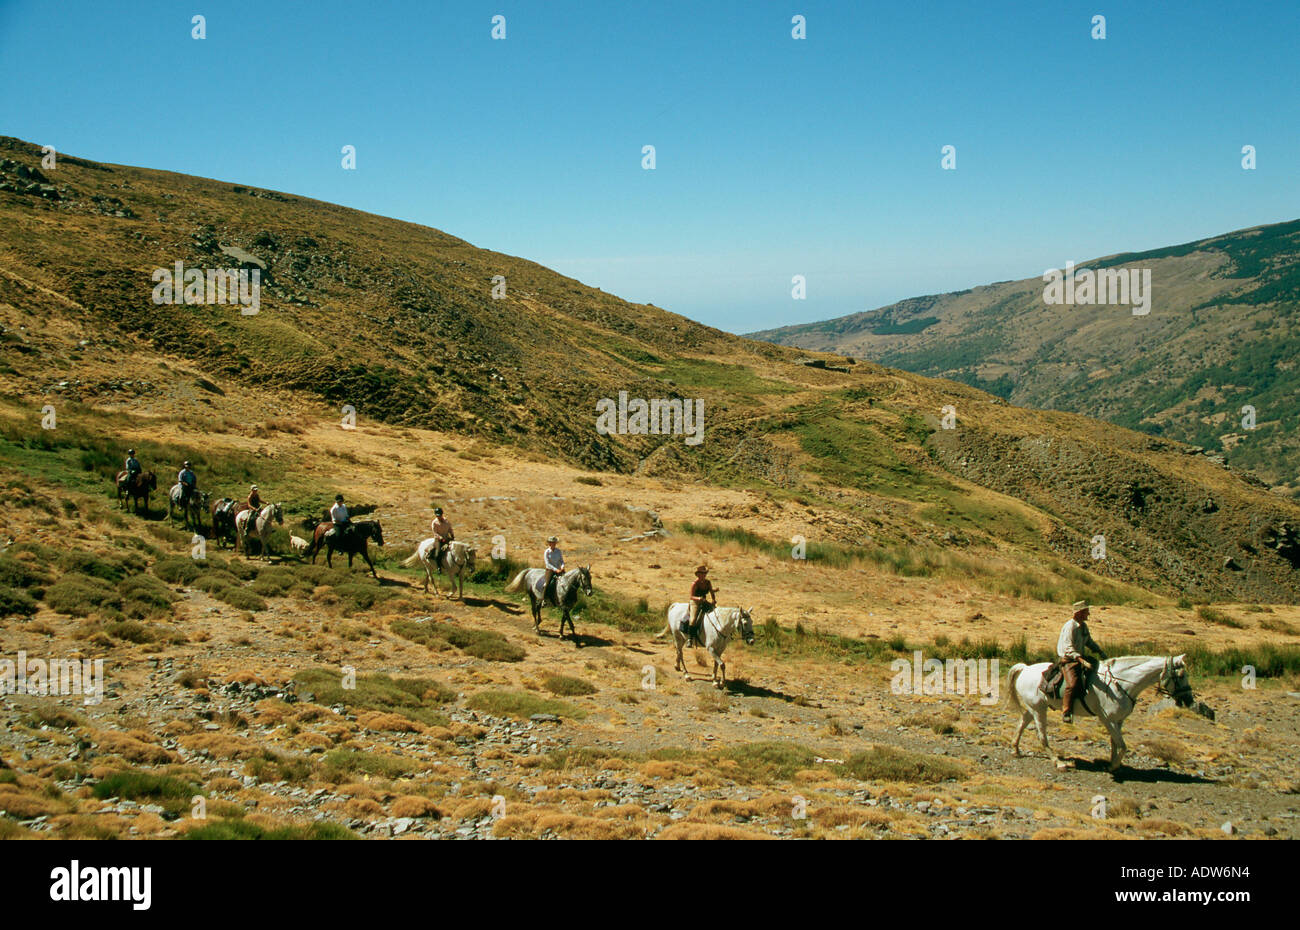 Riders  in the Alpujarra mountains of the Sierra Nevada in Spain - Stock Image